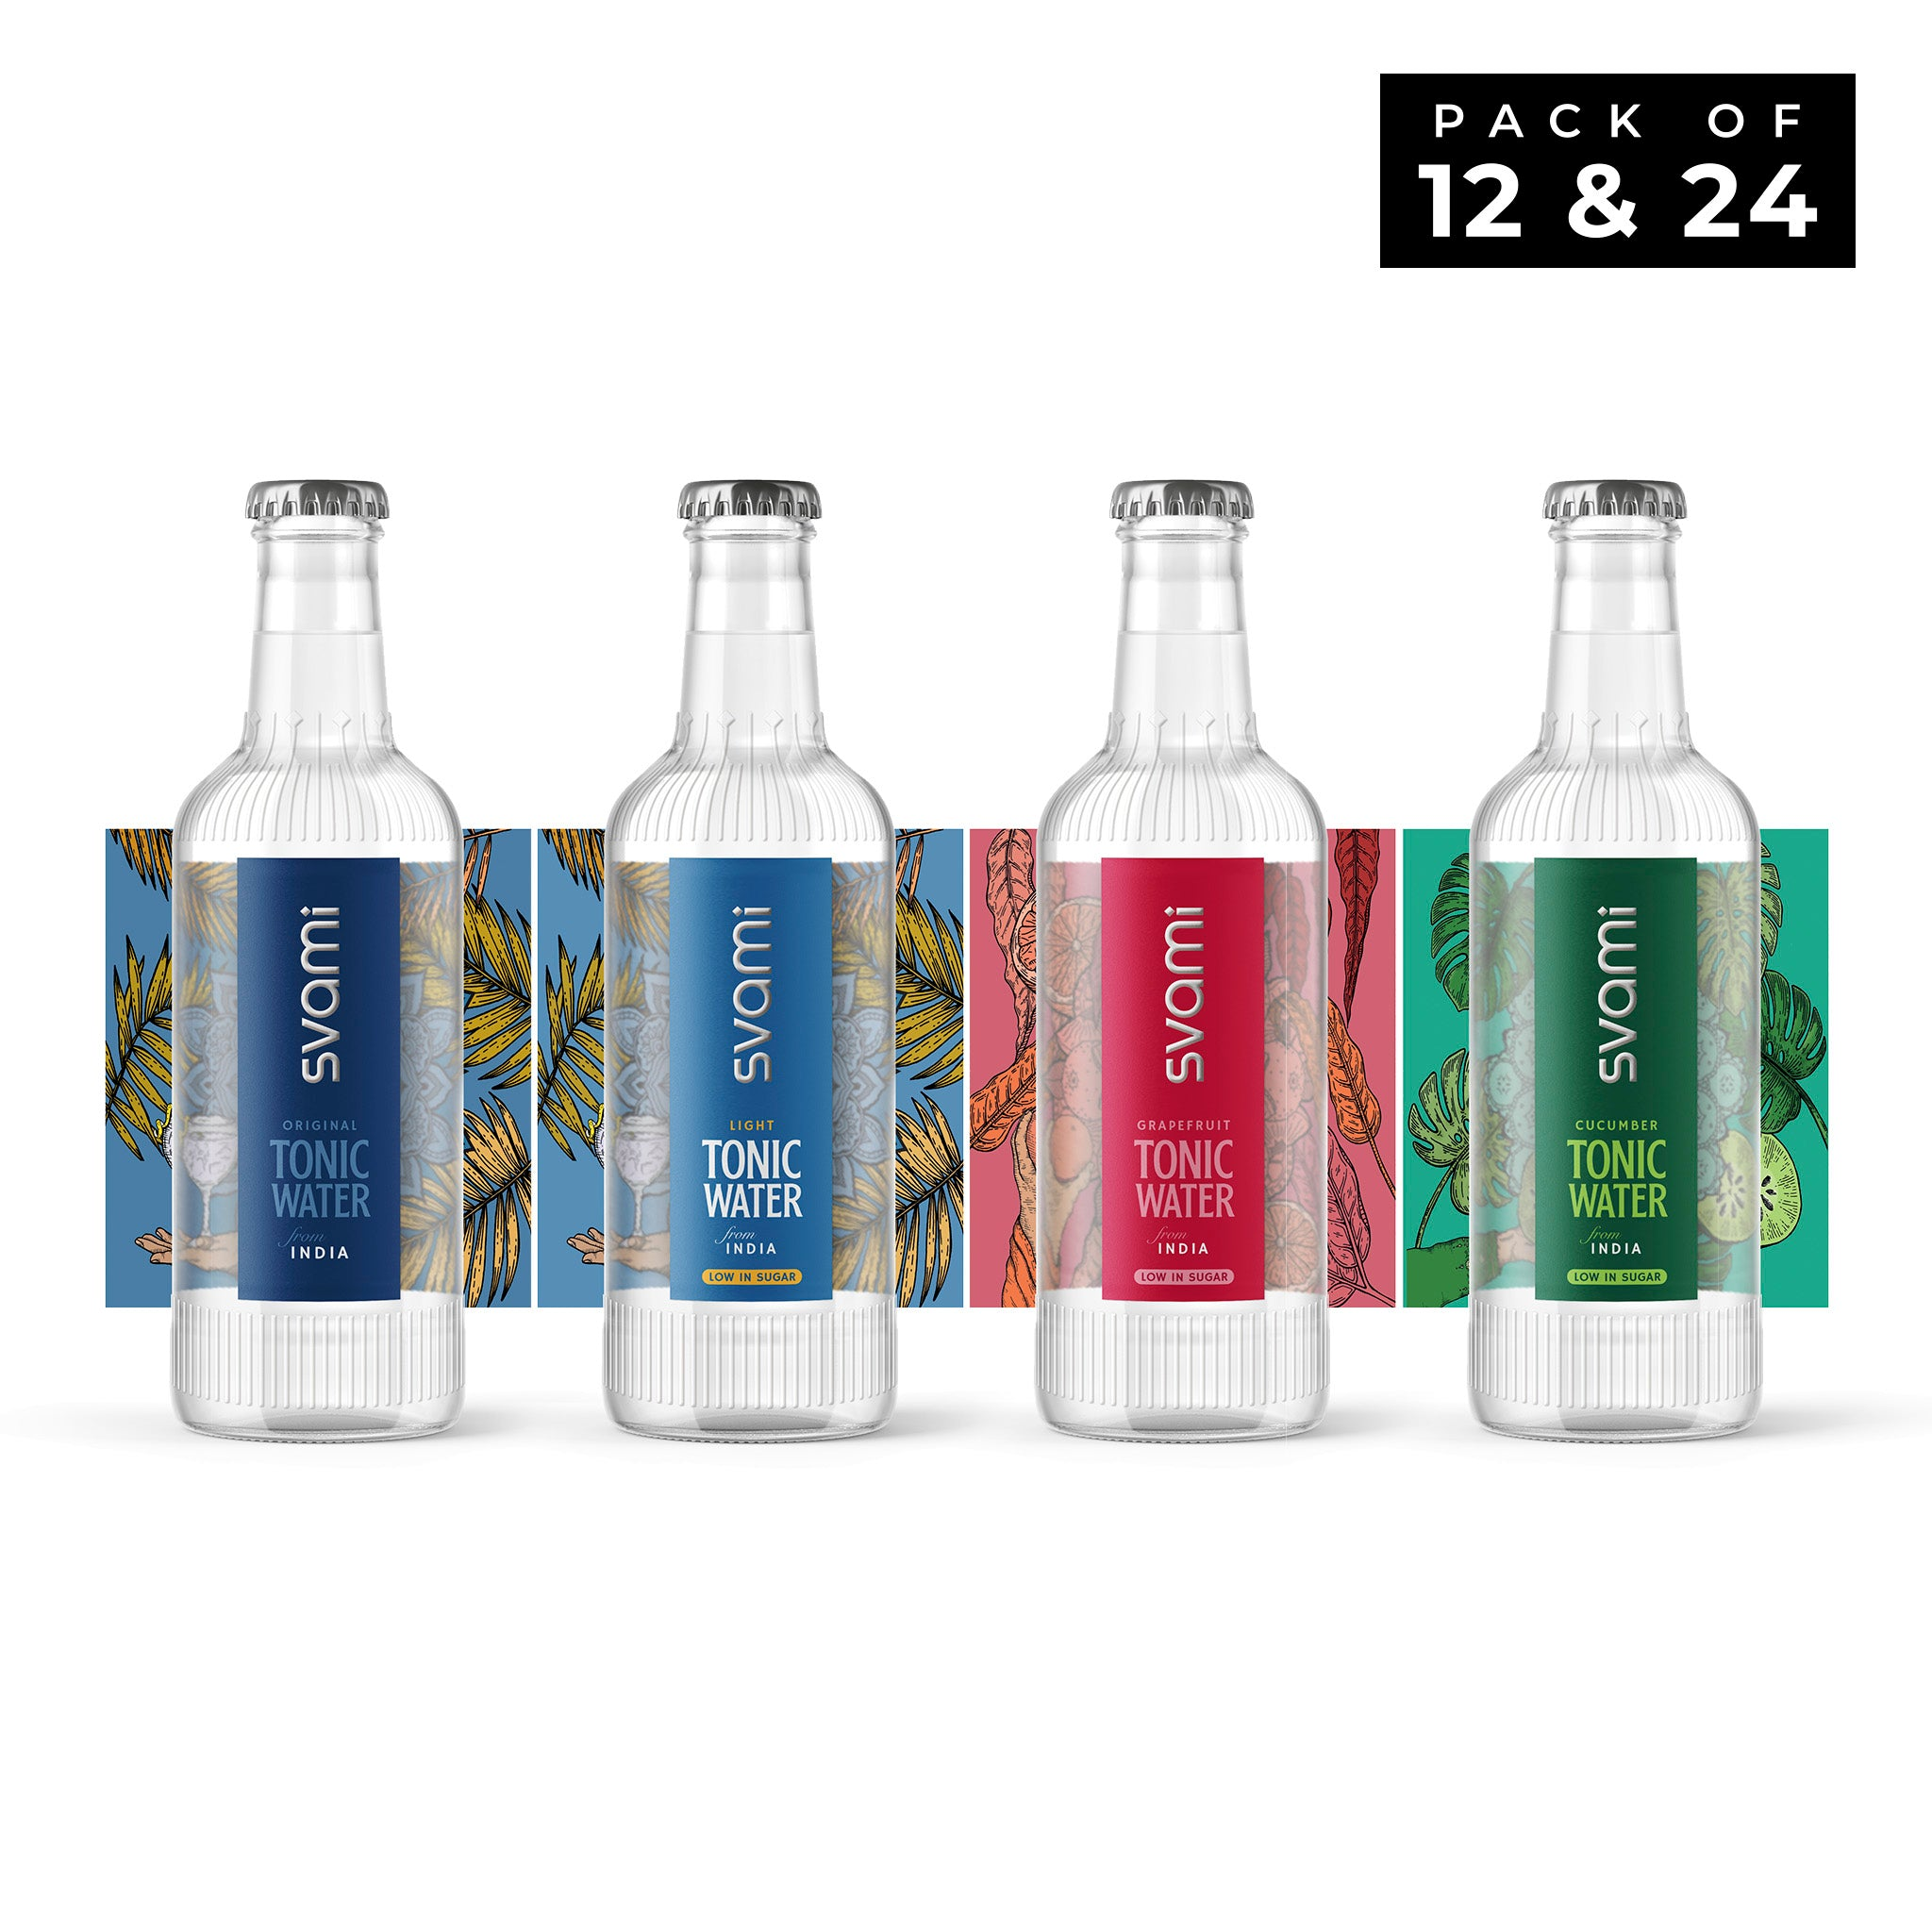 Svami Mixed Cased Tonic Water